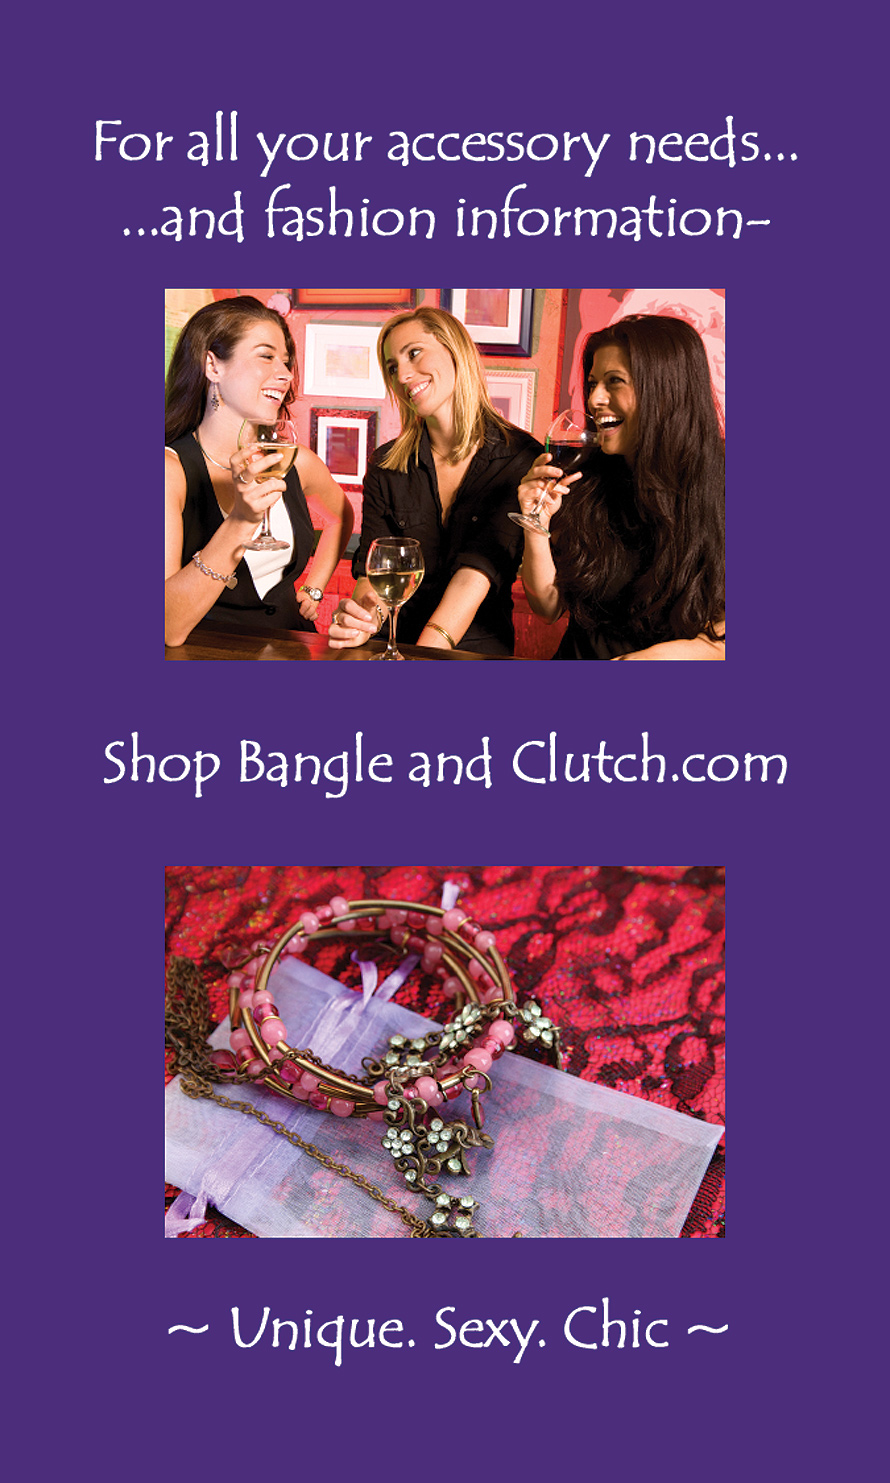 Bangle and Clutch Accessories